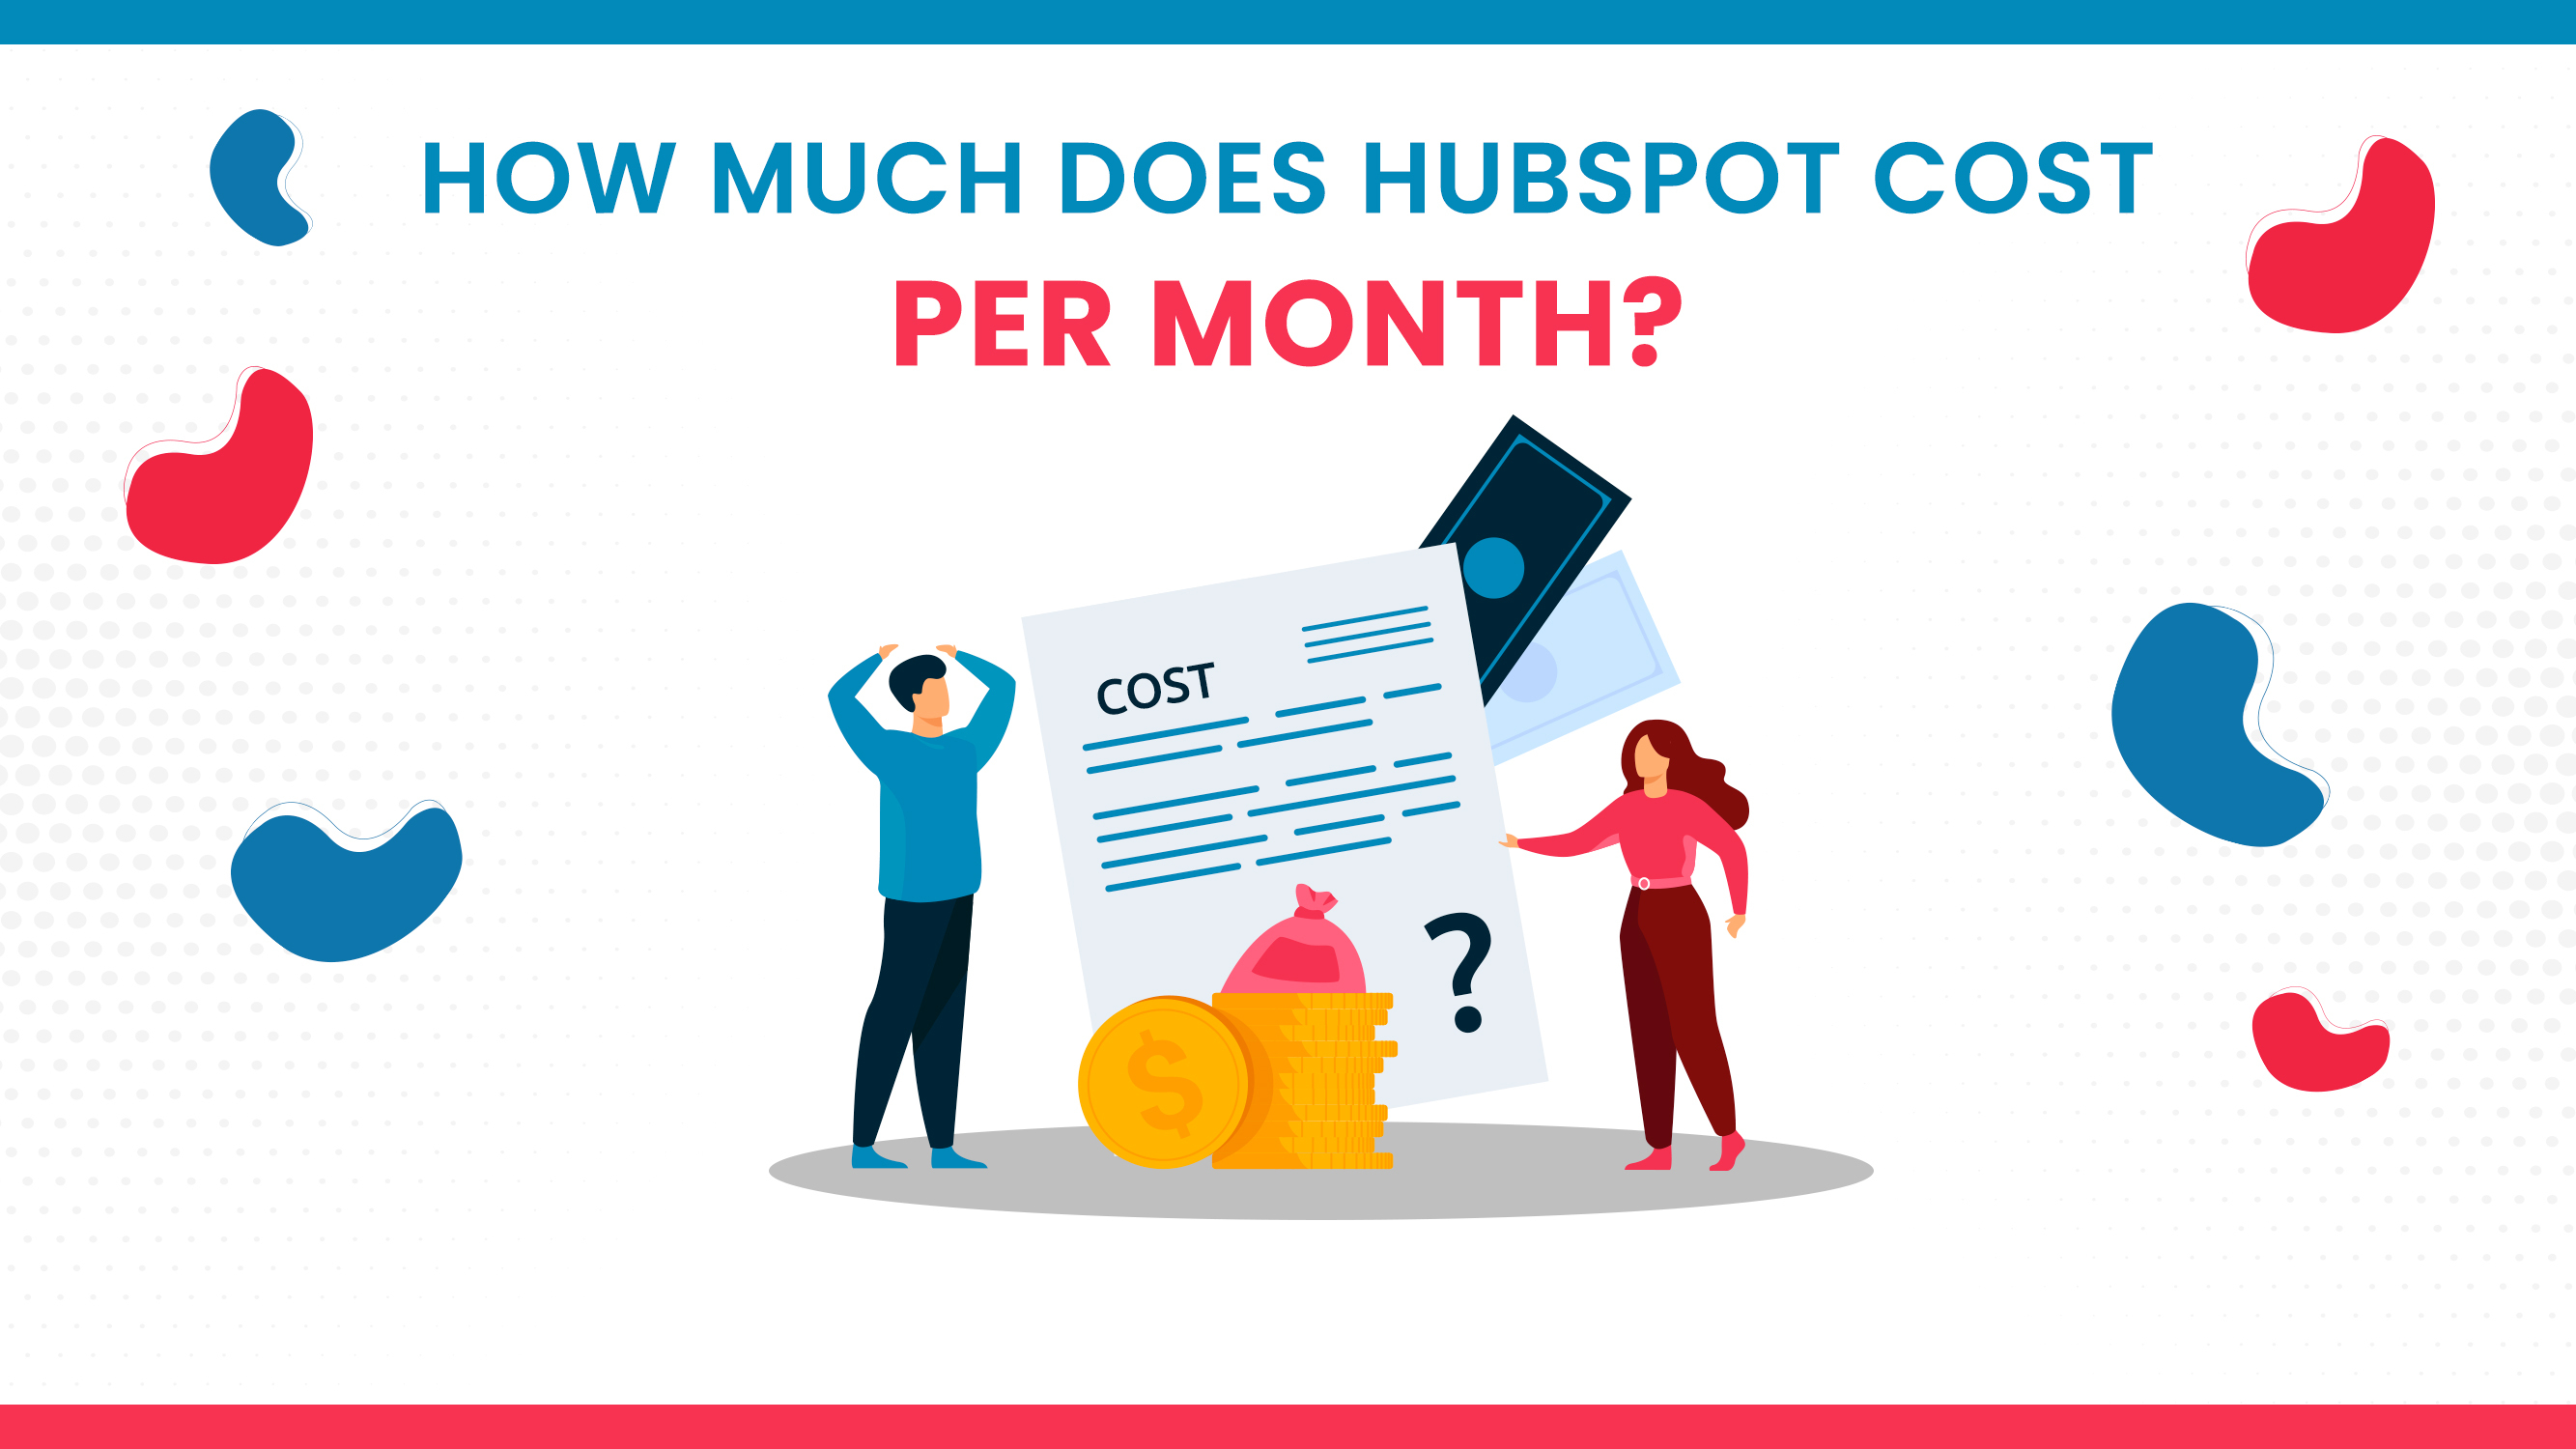 How Much Does HubSpot Cost Per Month?